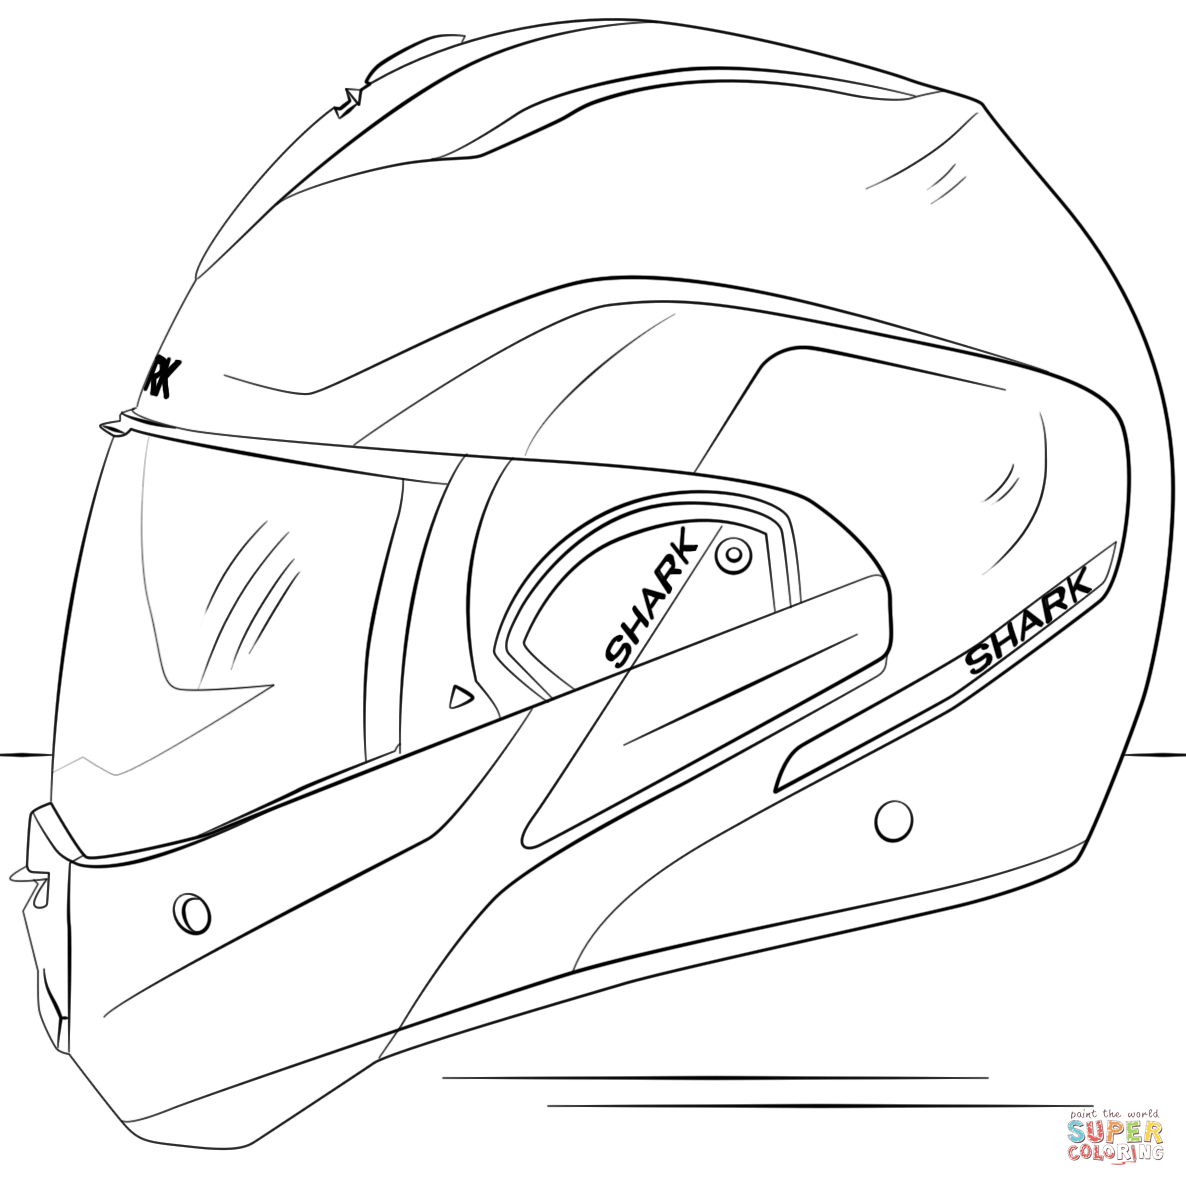 Motocross Helmet Drawing At Getdrawings